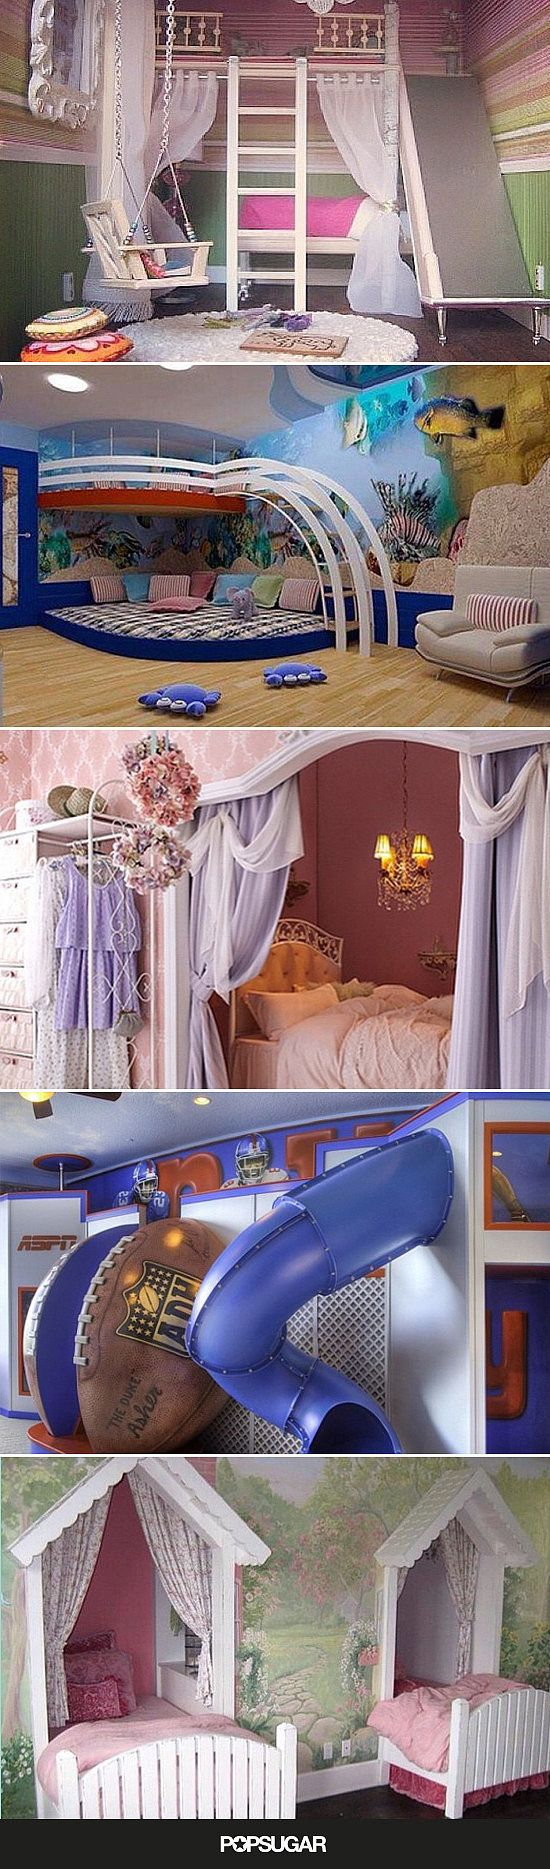 These 17 Crazy Kids' Rooms Will Make You Want to Redecorate Immediately